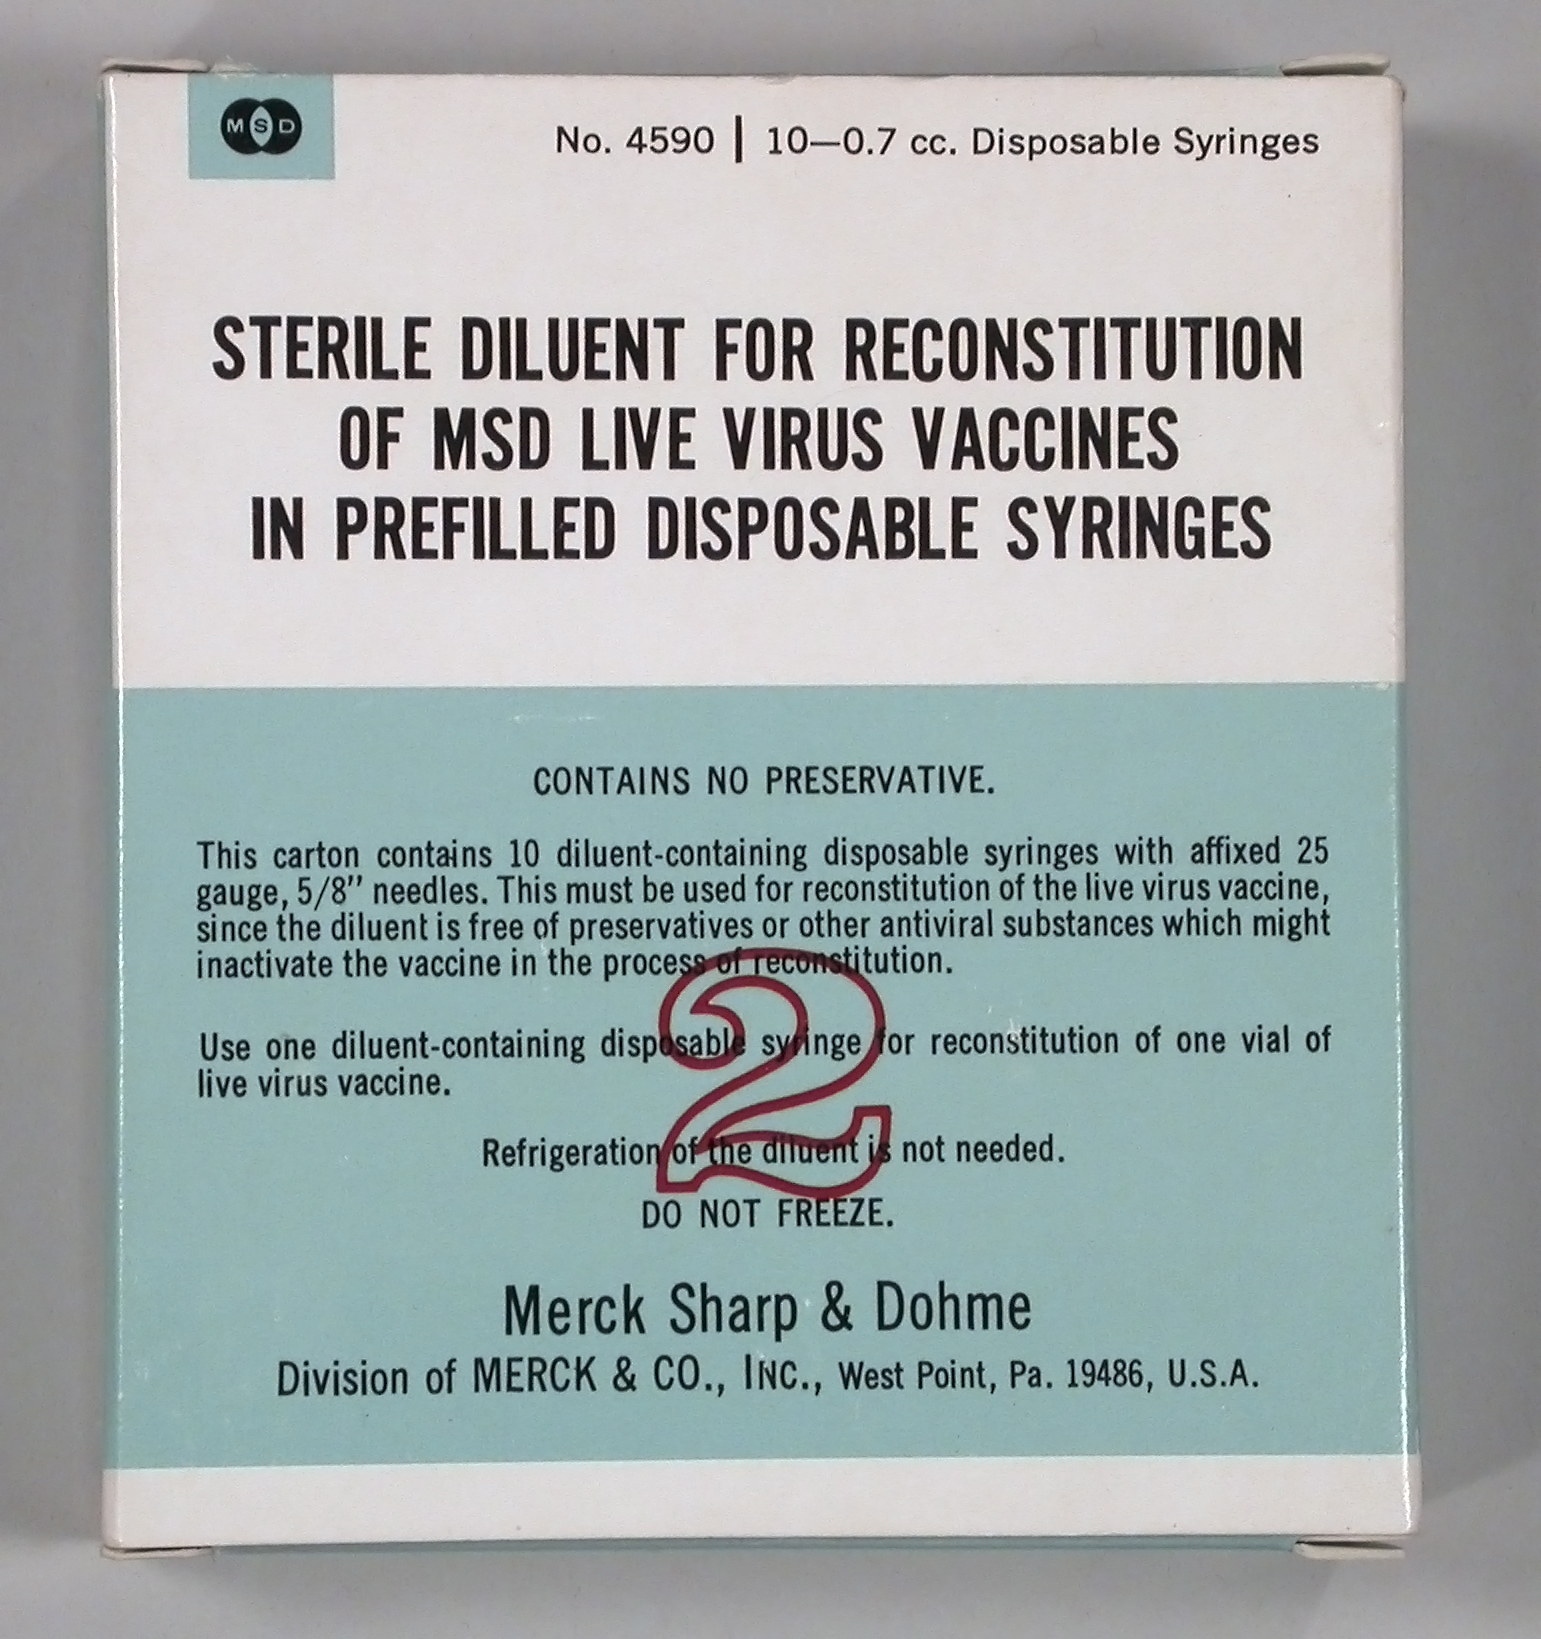 Sterile Diluent for Reconstitution of Msd Live Virus Vaccines - In Prefilled Disposable Syringes